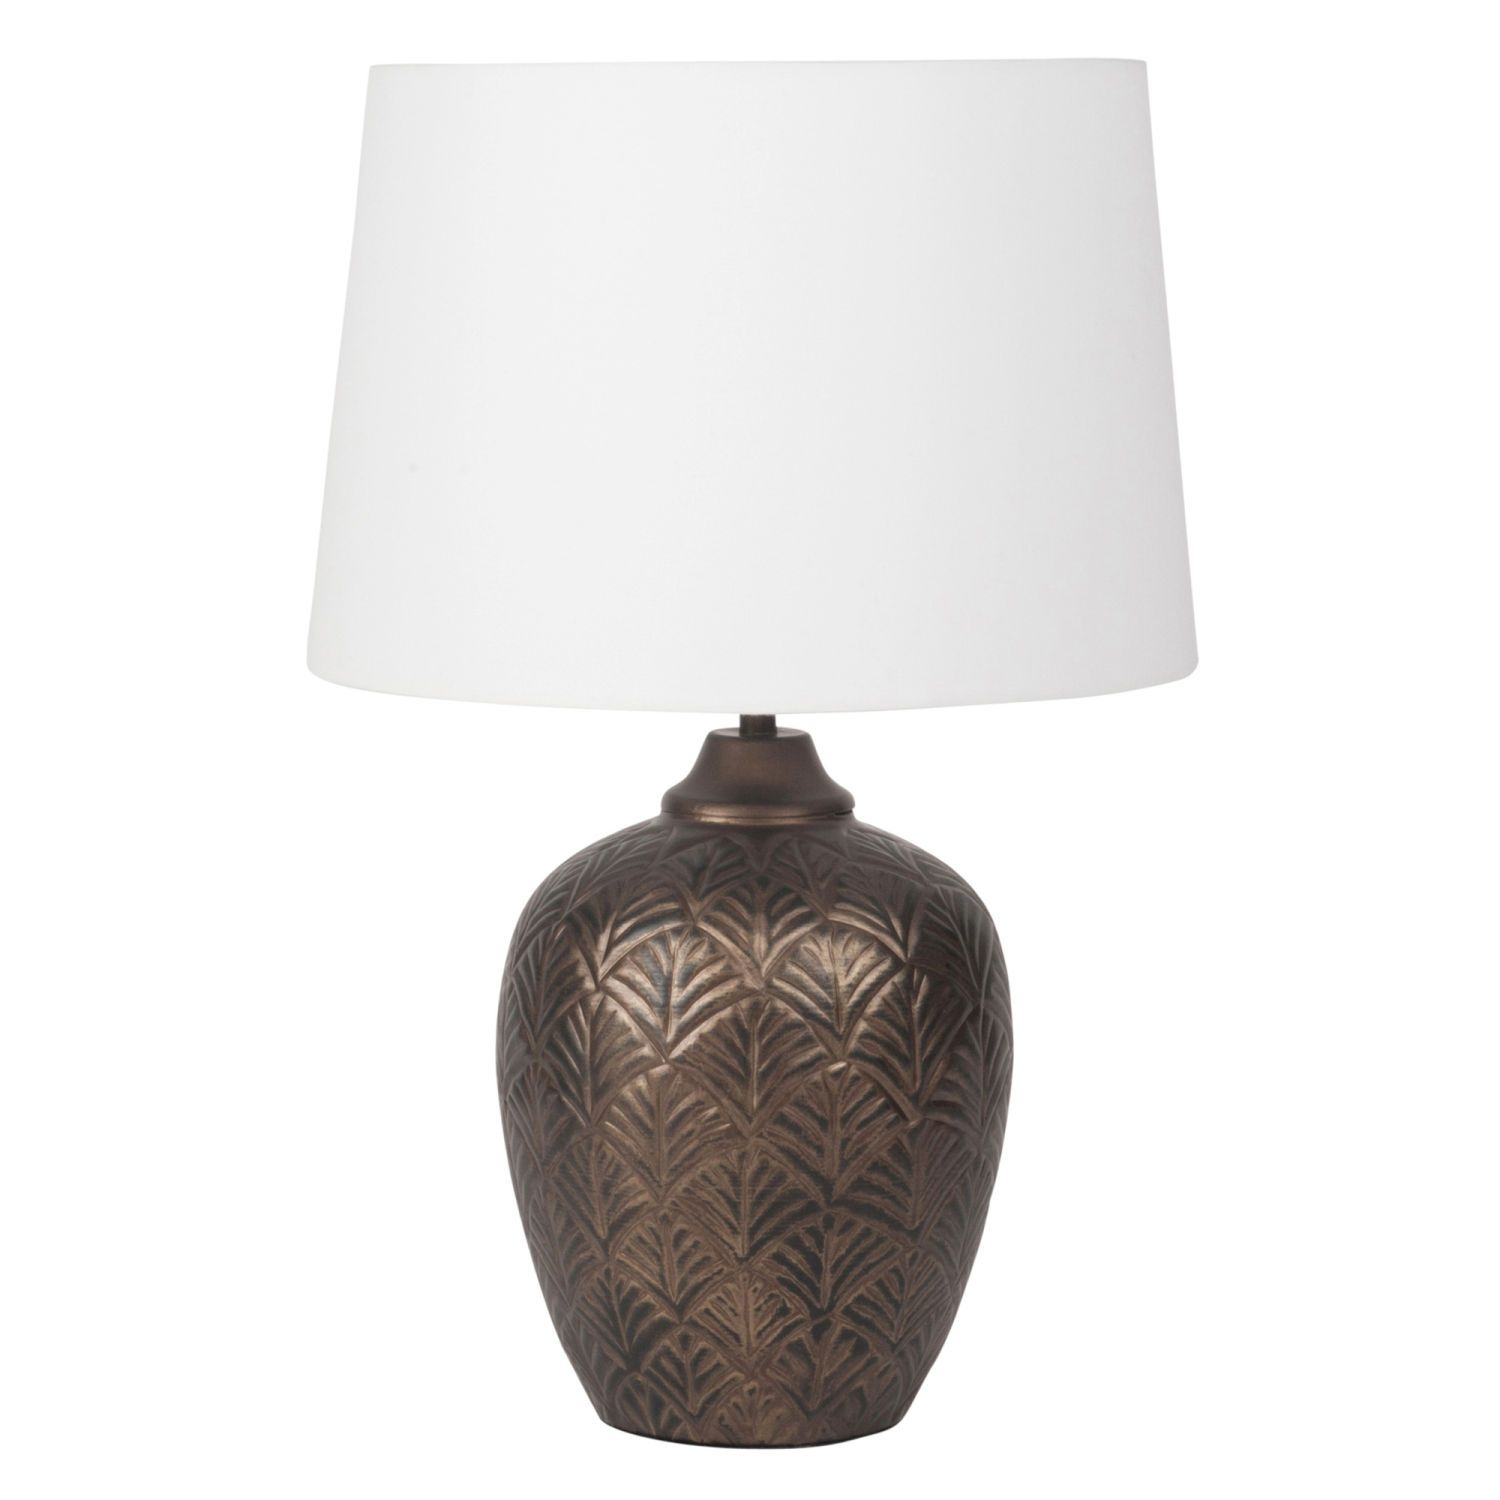 Gold Metal Lamp With White Shade On Maisons Du Monde Take Your Pick From Our Furniture And Accessories And Be Inspi Abat Jour Blanc Abat Jour Maison Du Monde